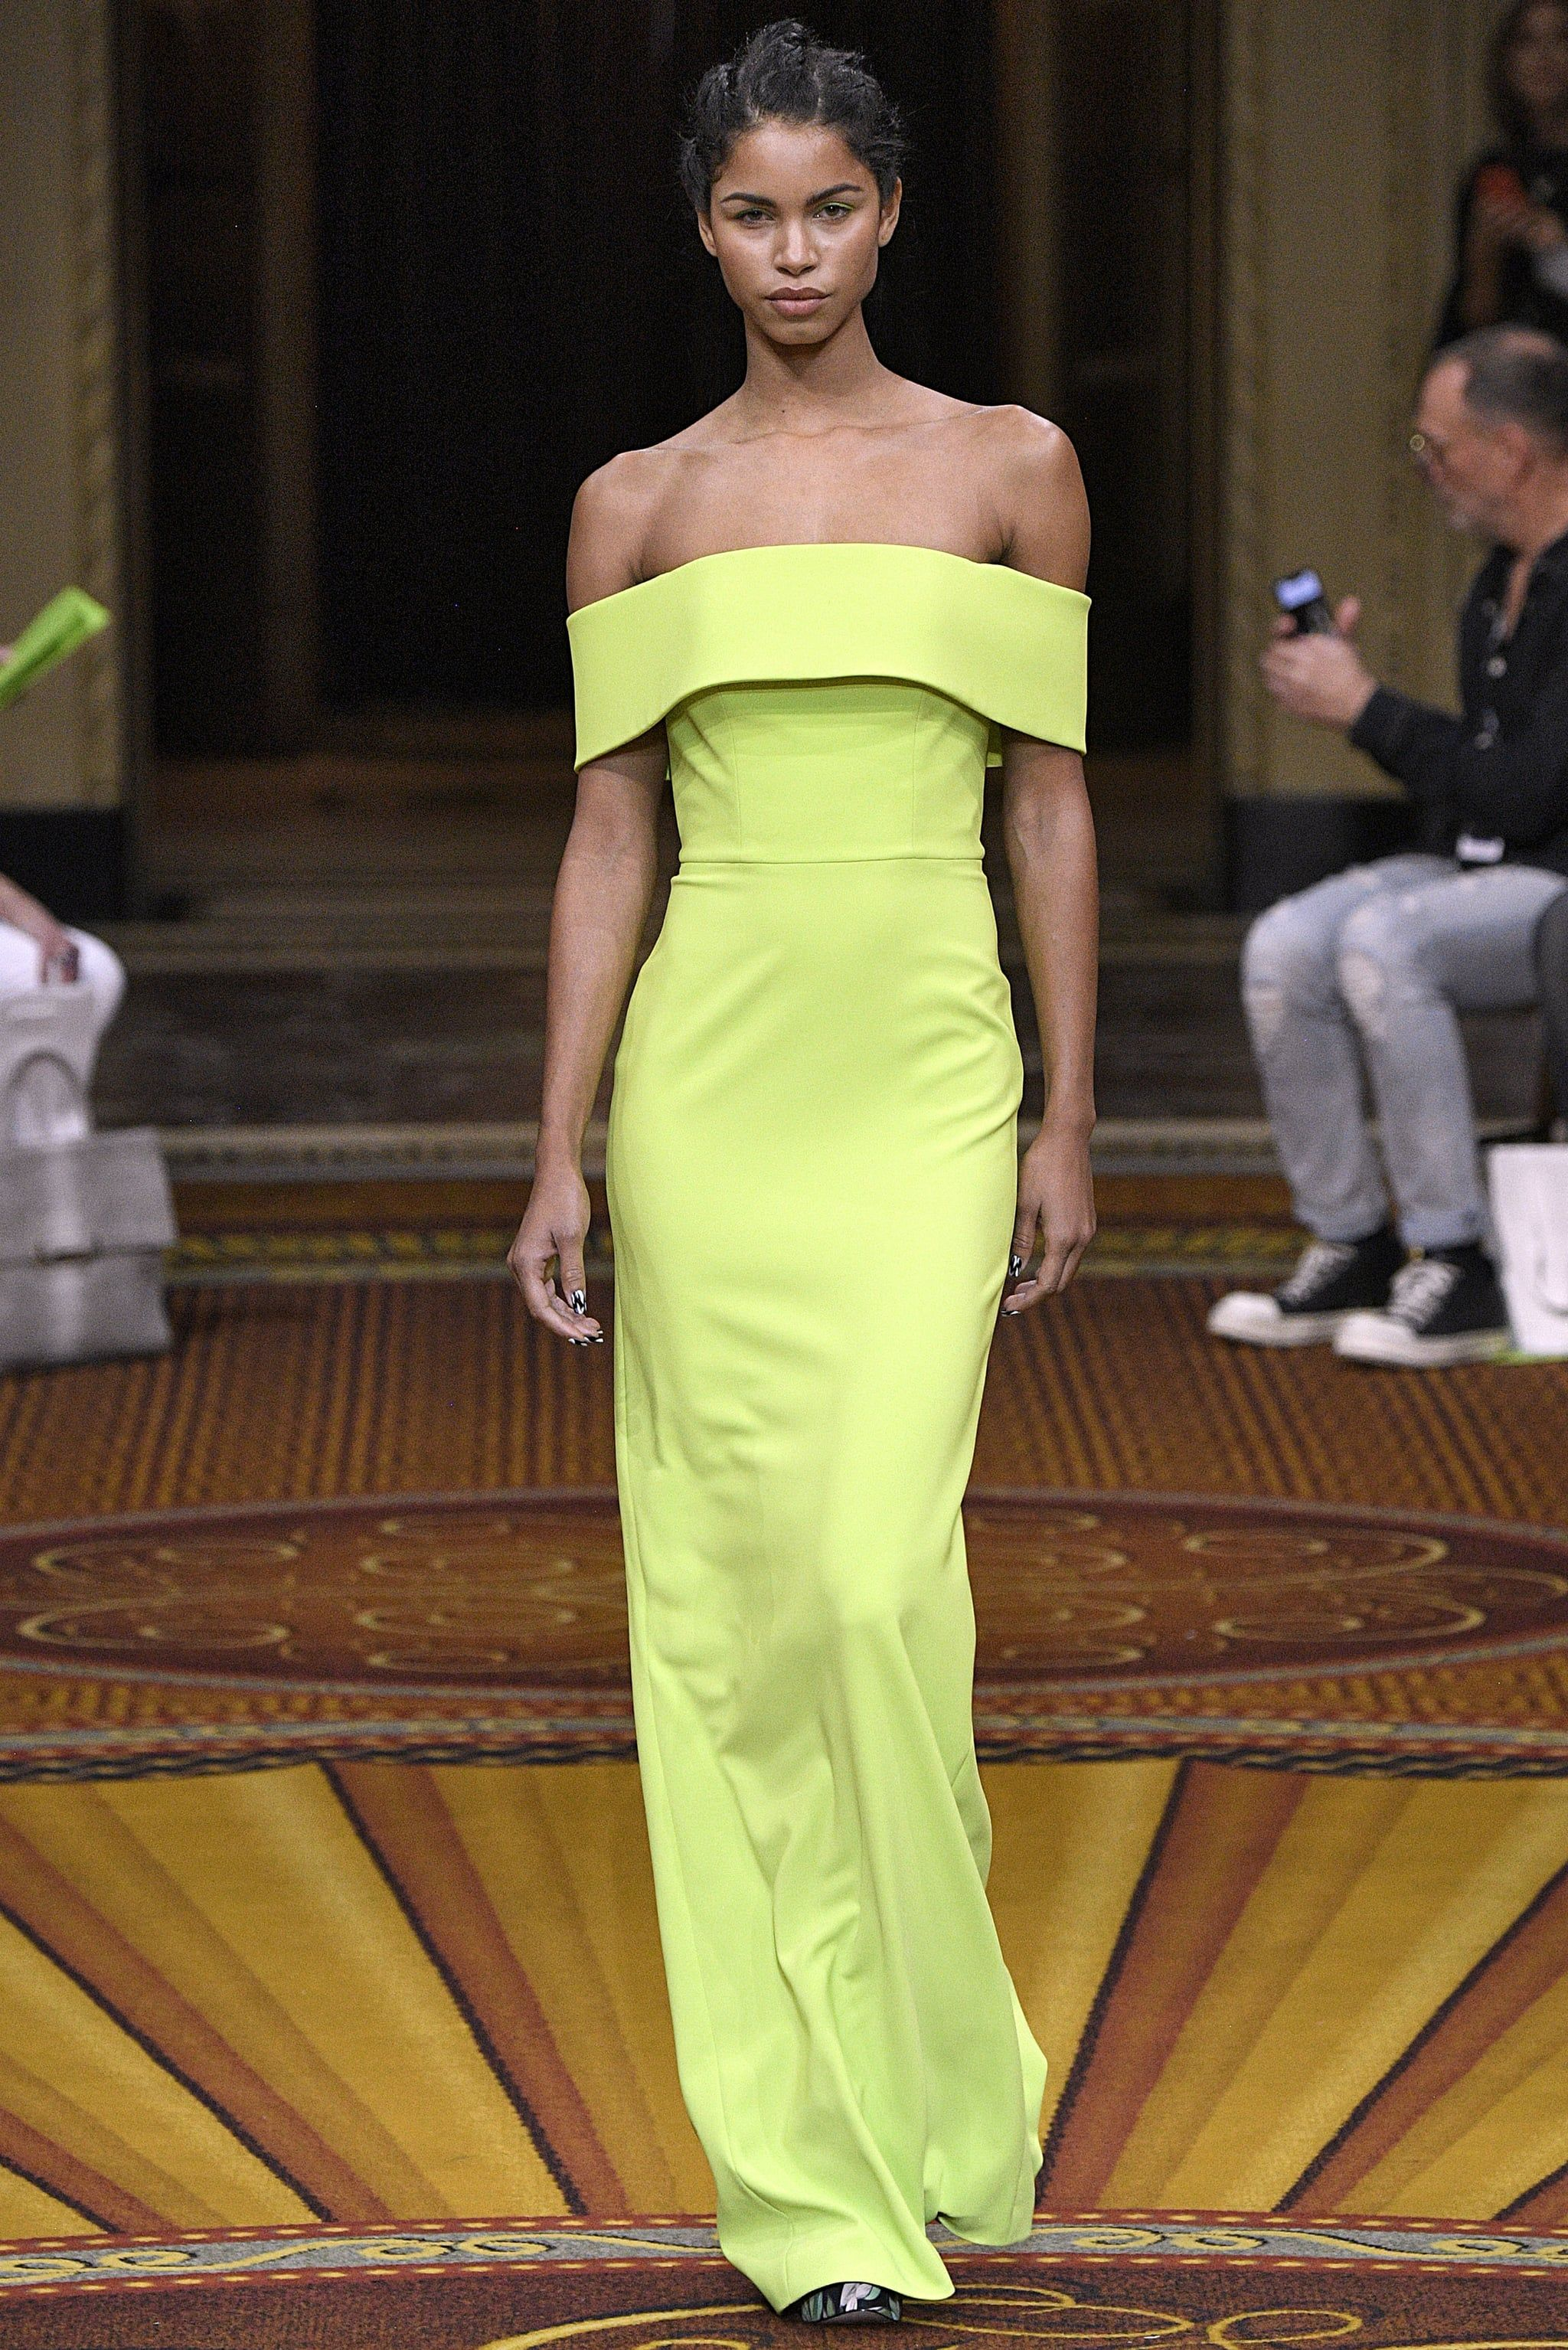 df92e22d Kendall Jenner Green Christian Siriano Dress Christmas 2018 - Sam's Great  deals